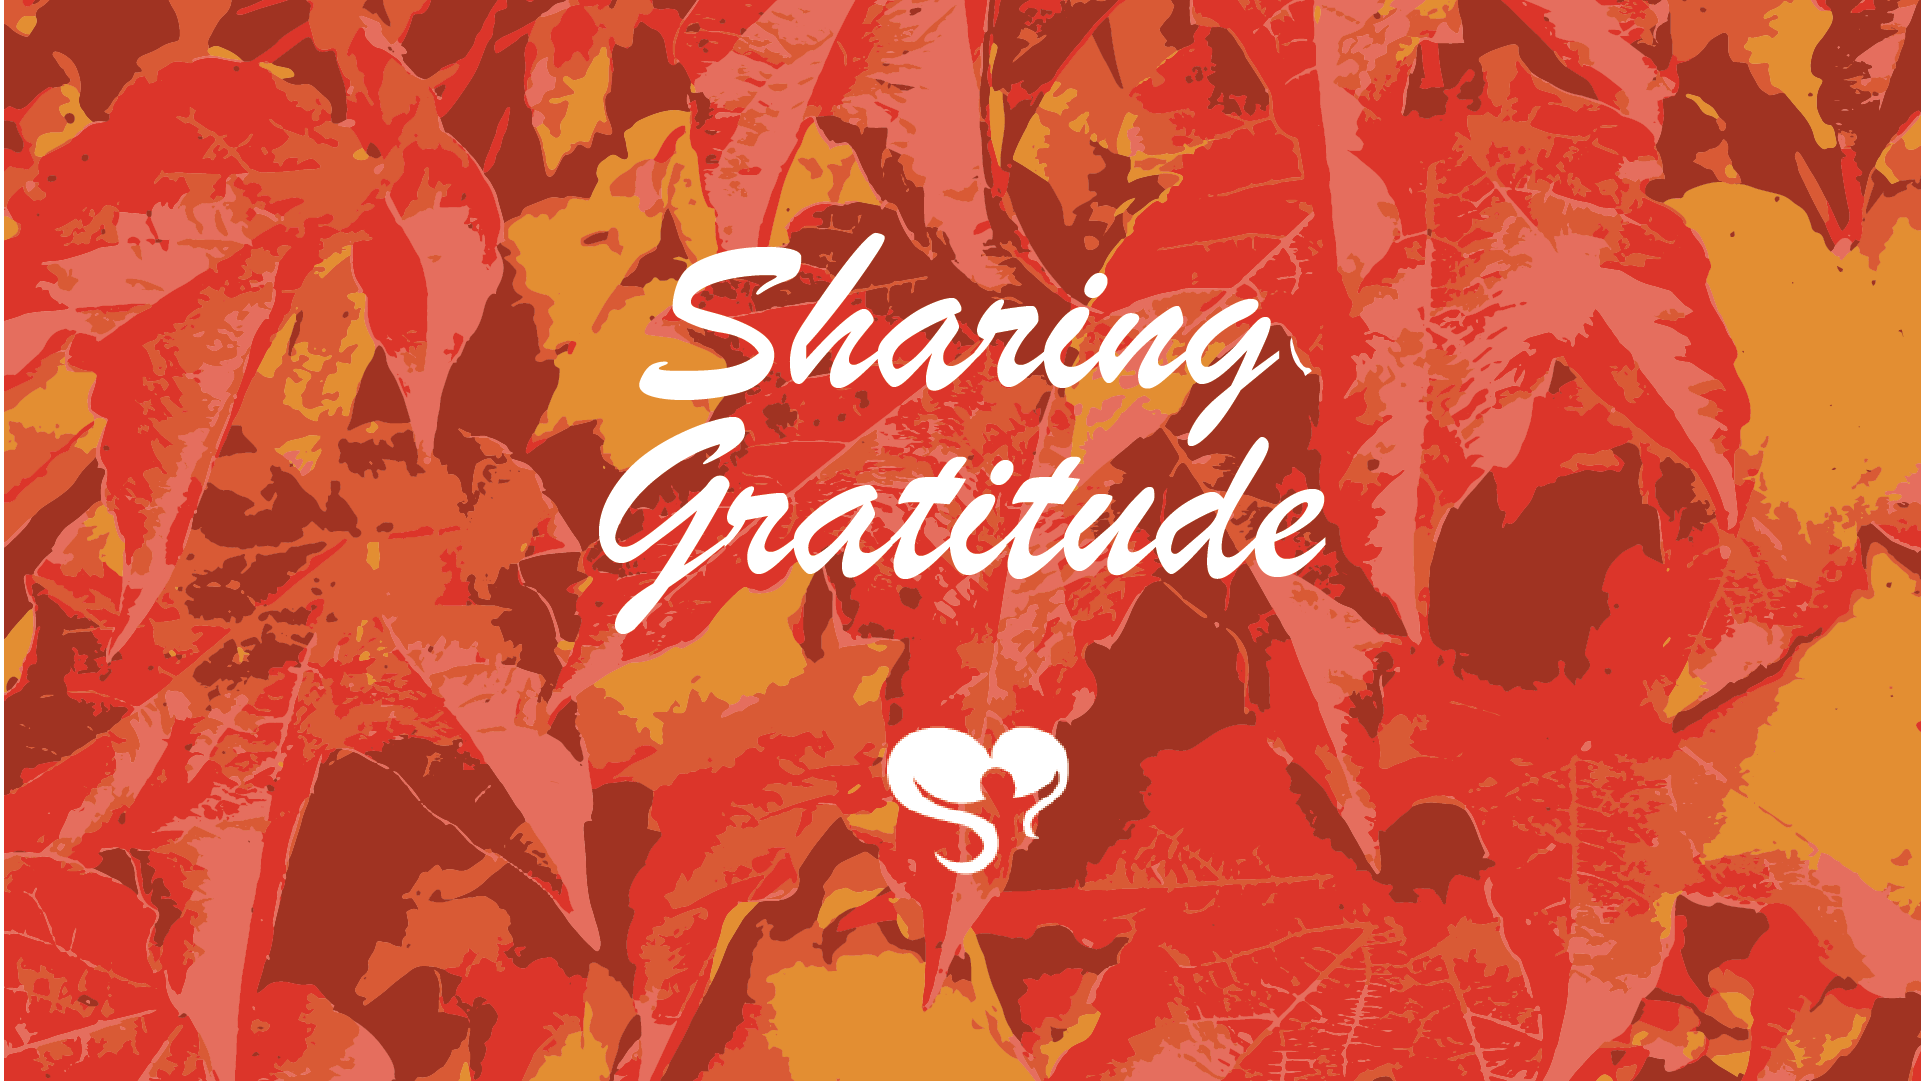 Sharing Gratitude - Sharing Gratitude This Thanksgiving - A Message From Patricia Kennedy